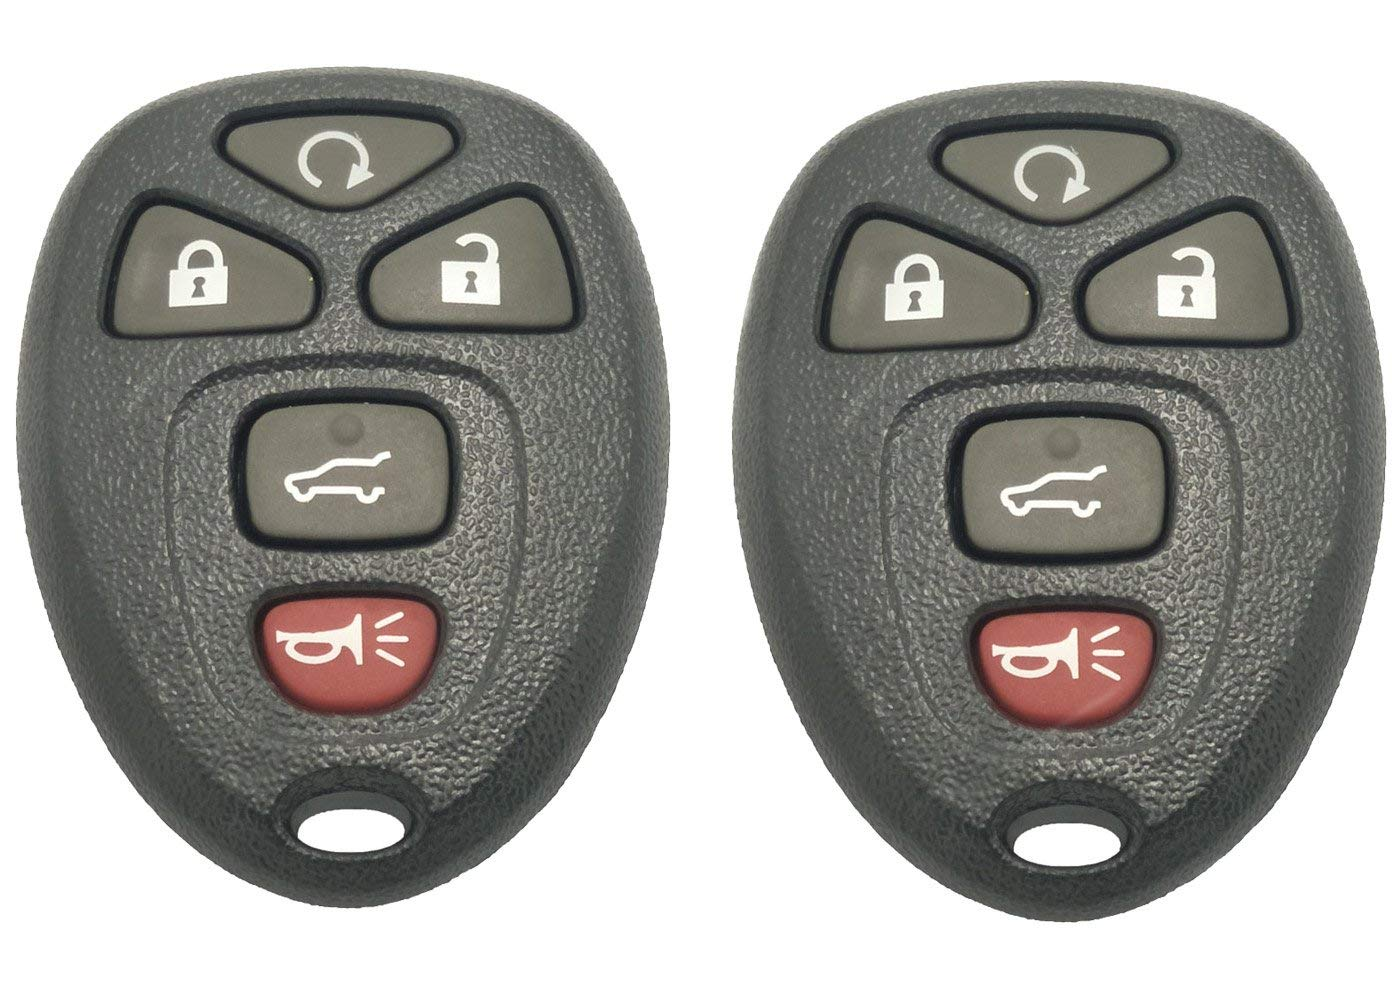 Replacement Key Fob Case Shell for Chevrolet Colorado GM GMC Canyon Isuzu Hummer 3 Buttons Keyless Entry Remote Car Key Casing with Button Pad Black